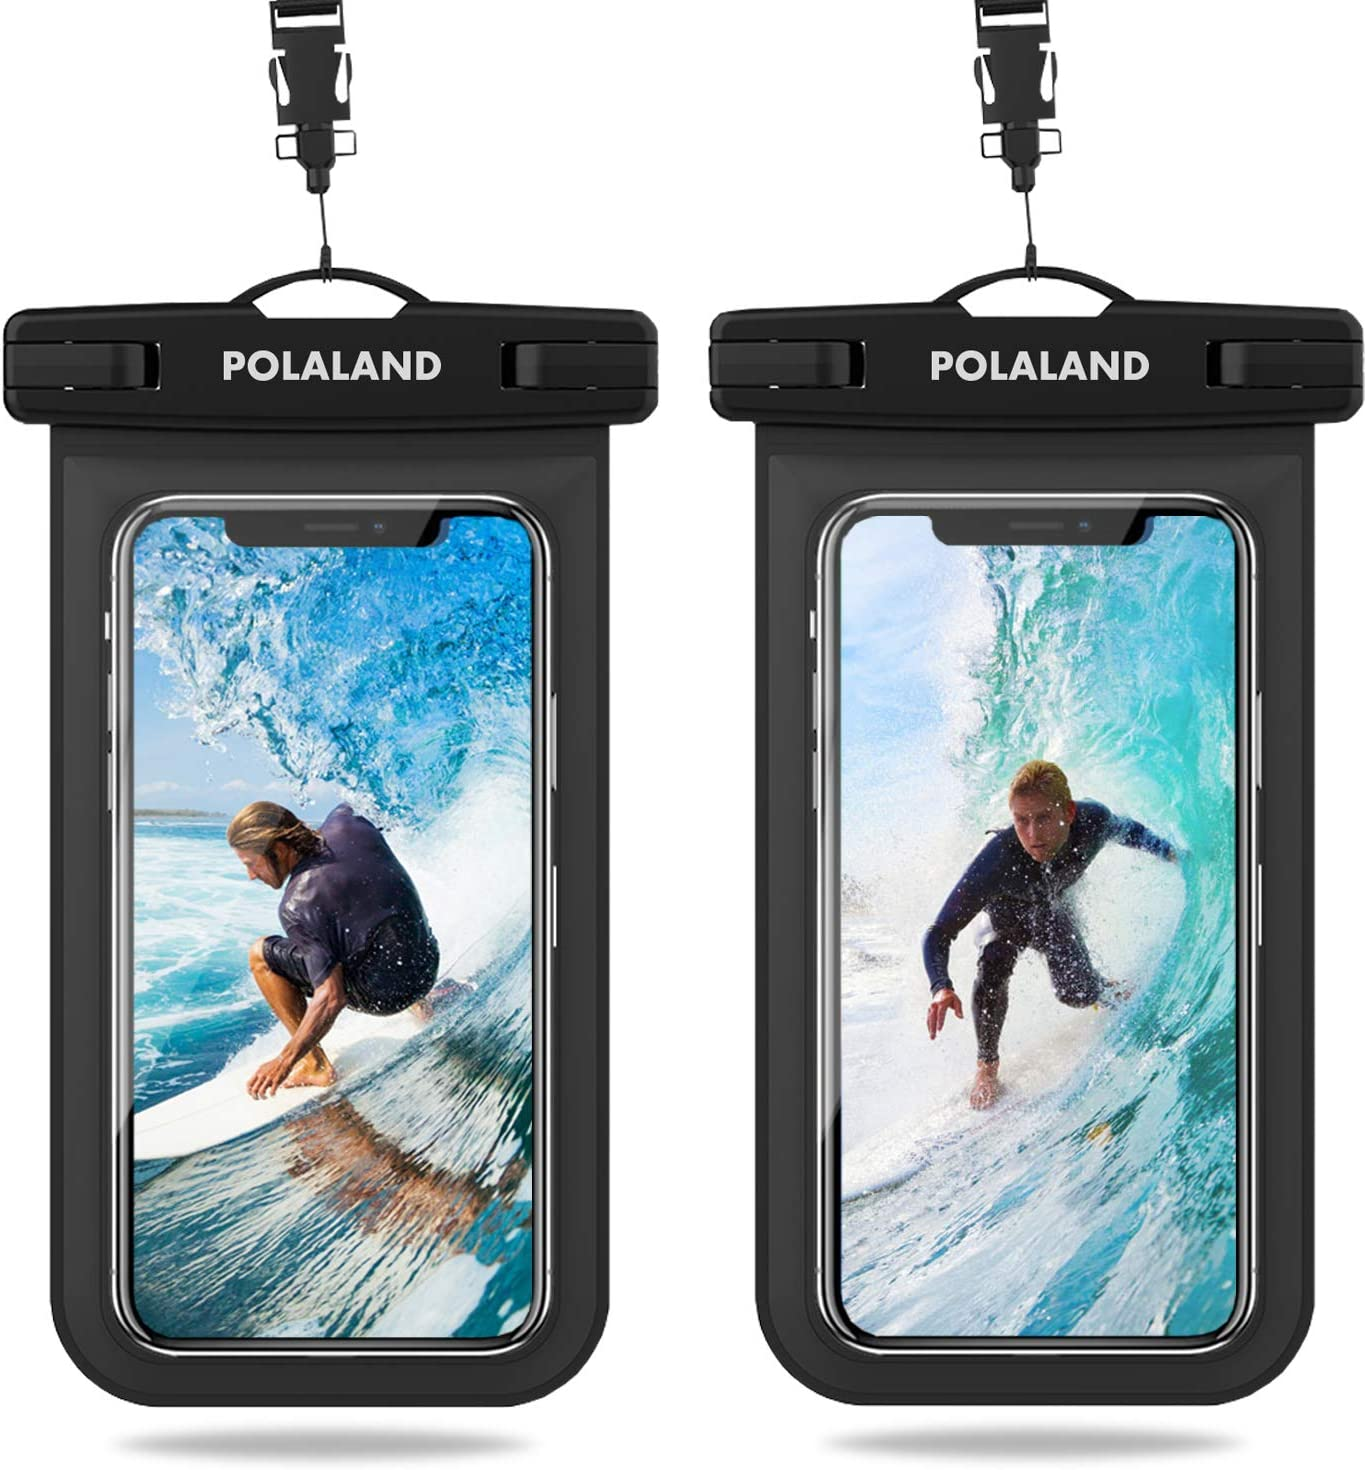 Polaland Waterproof Phone Pouch, Universal Cell Phone Dry Bag Underwater Case Compatible for iPhone 12 Pro 11 Xs Max SE 2020 XR X 8 Plus 7 6S, Galaxy S20+, S10+, Note 10+ up to 6.9